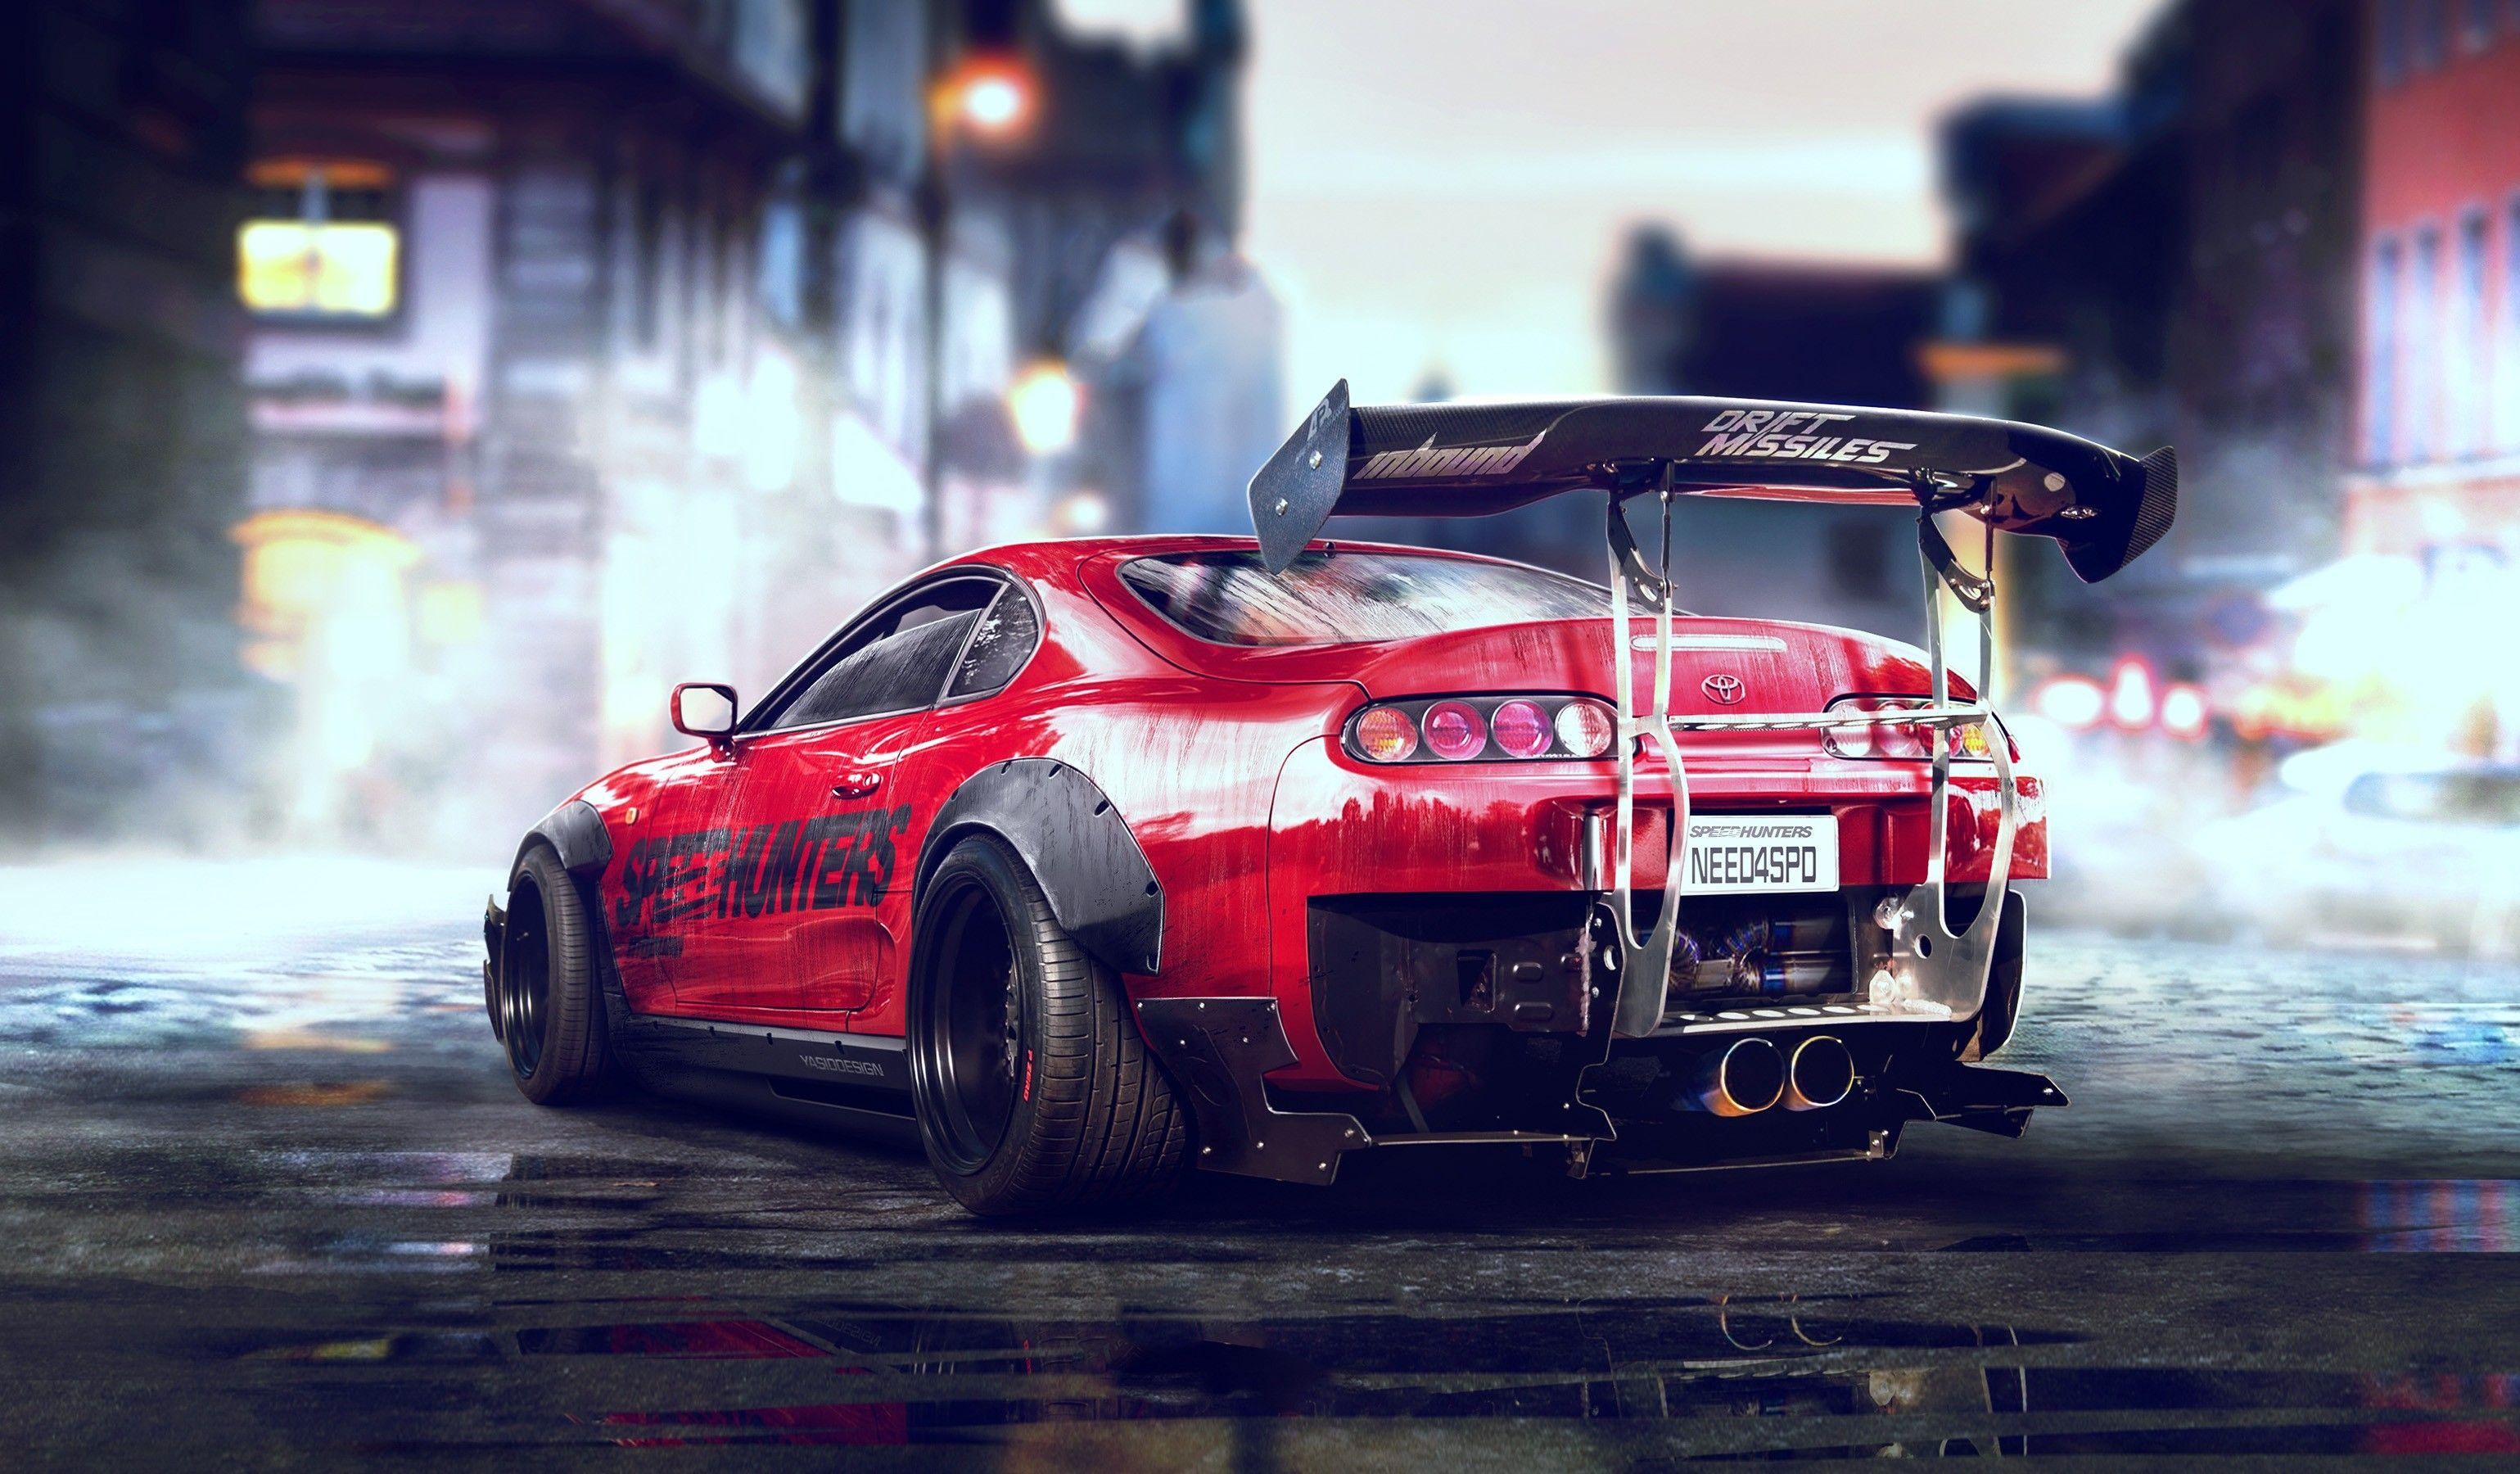 Toyota Supra, HD Cars, 4k Wallpapers, Image, Backgrounds, Photos